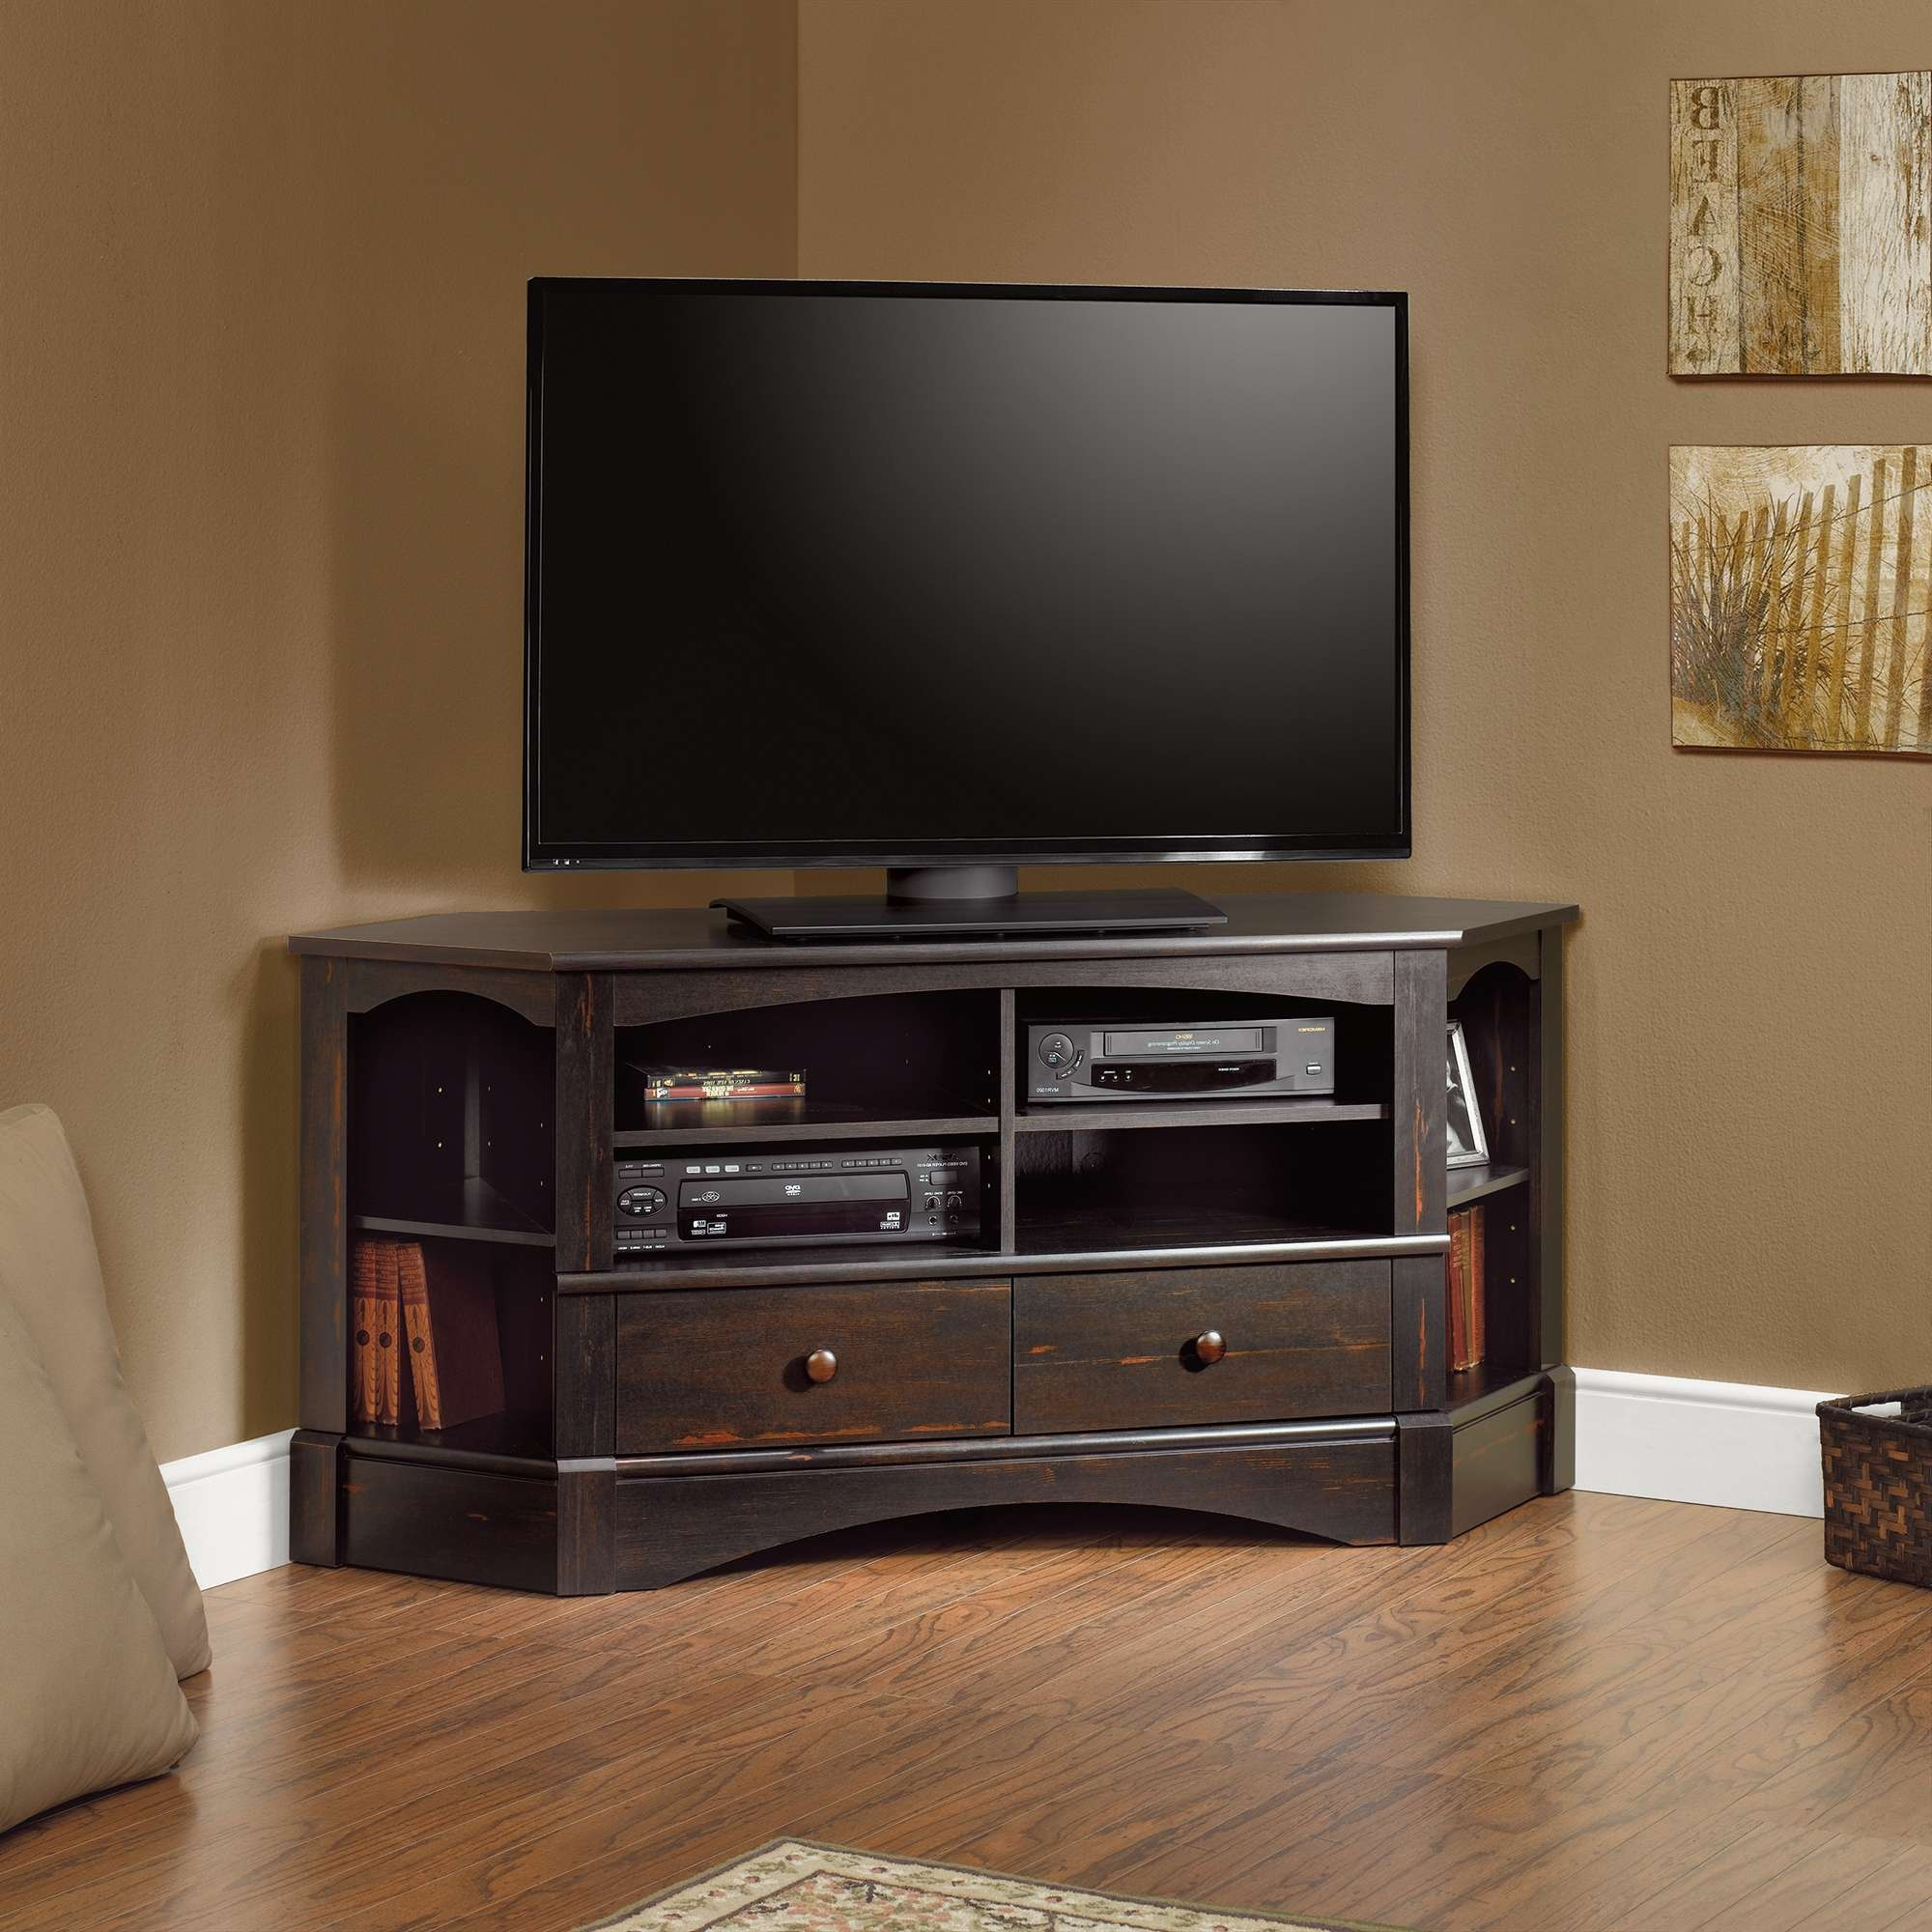 Harbor View | Corner Entertainment Credenza | 402902 | Sauder Within Tv Stands For Corners (View 6 of 15)